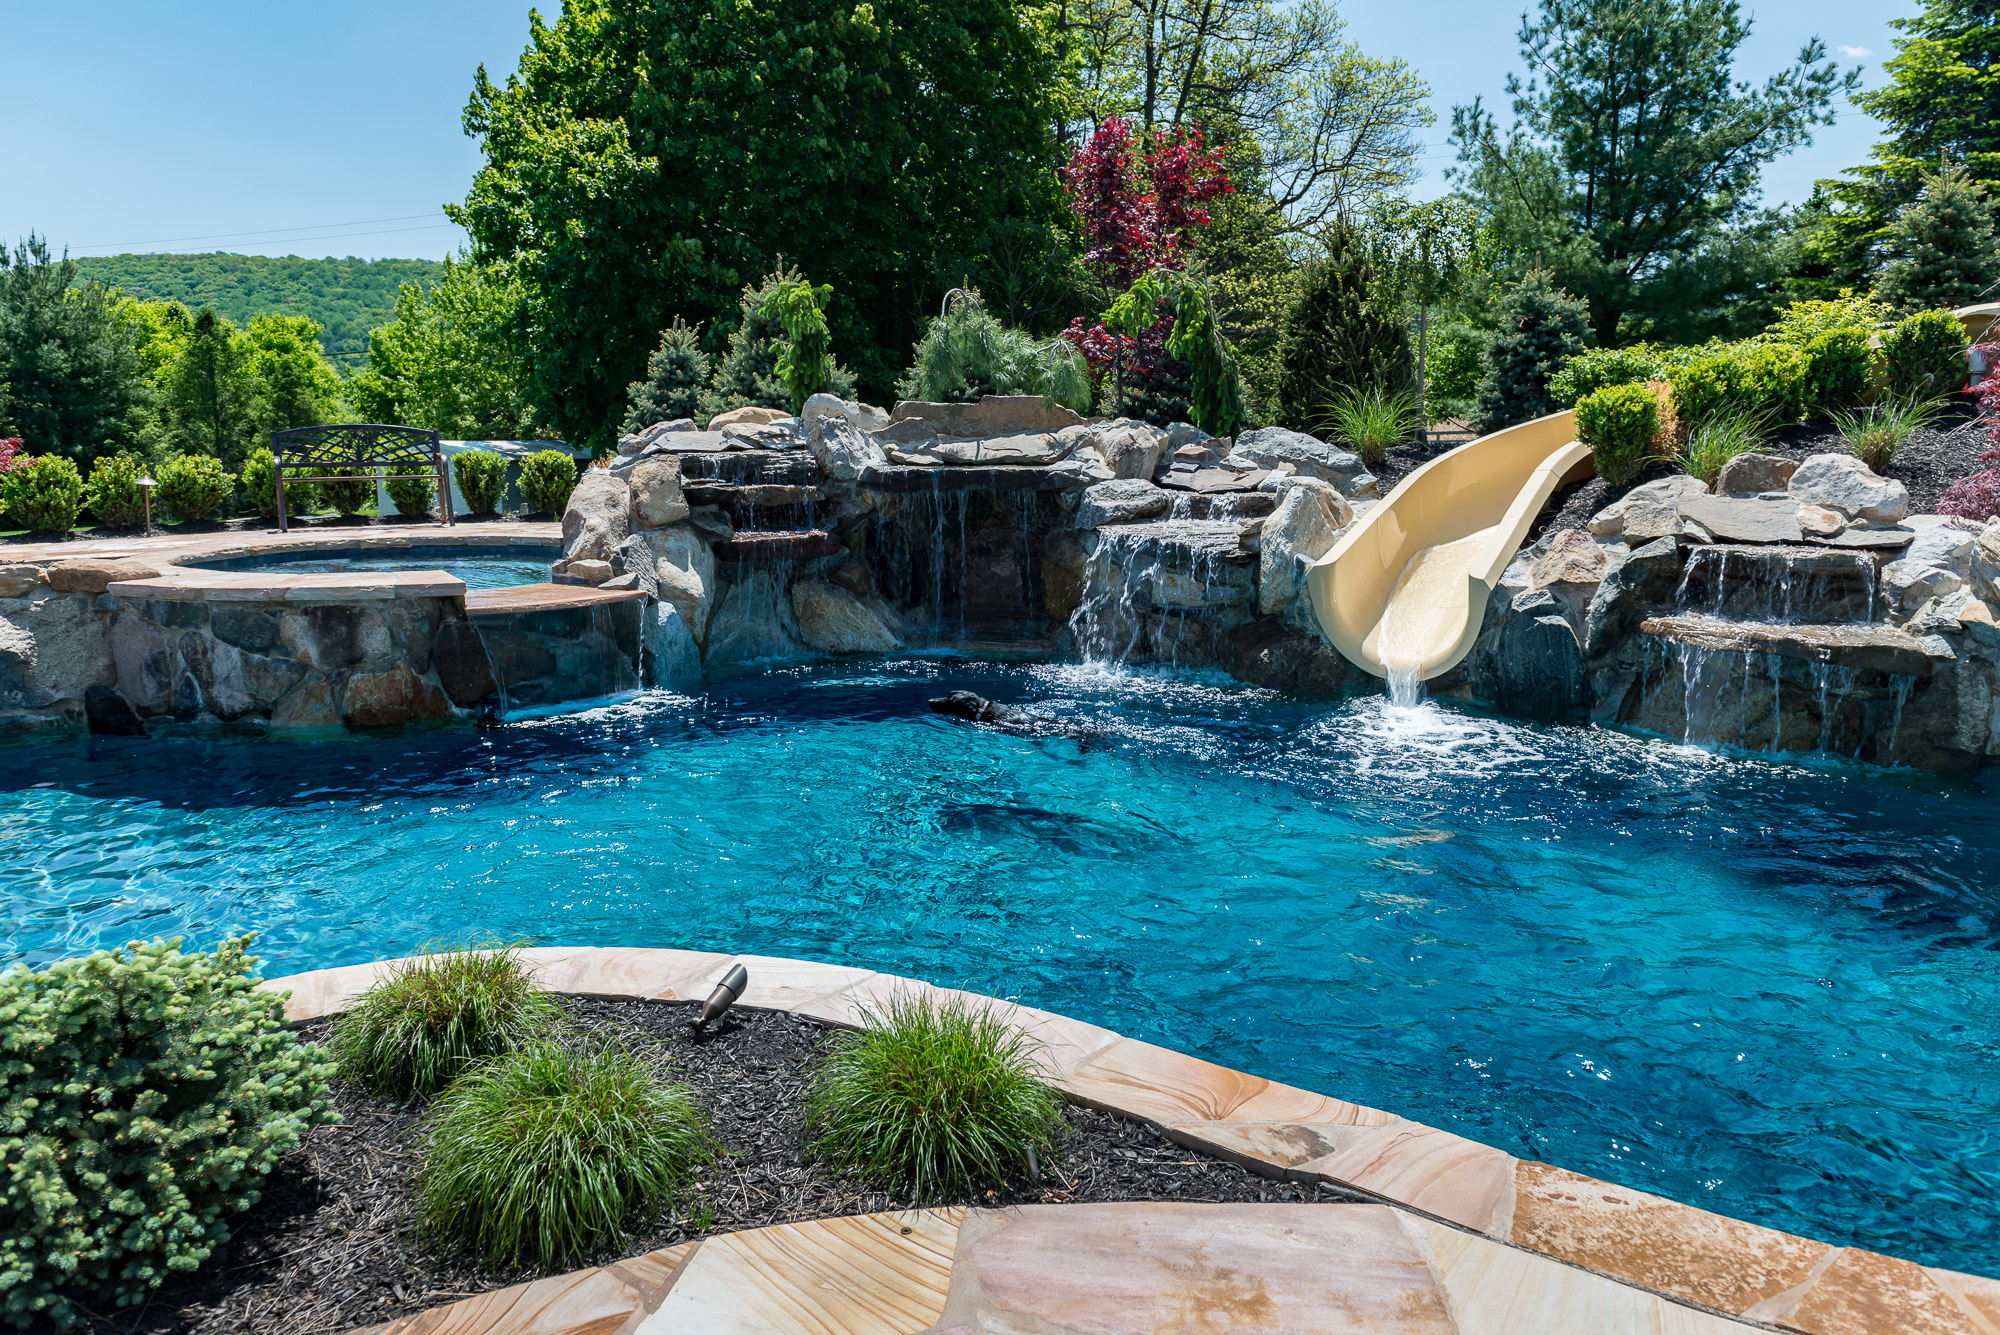 Bloomsbury nj custom inground swimming pool design for Pool design new jersey